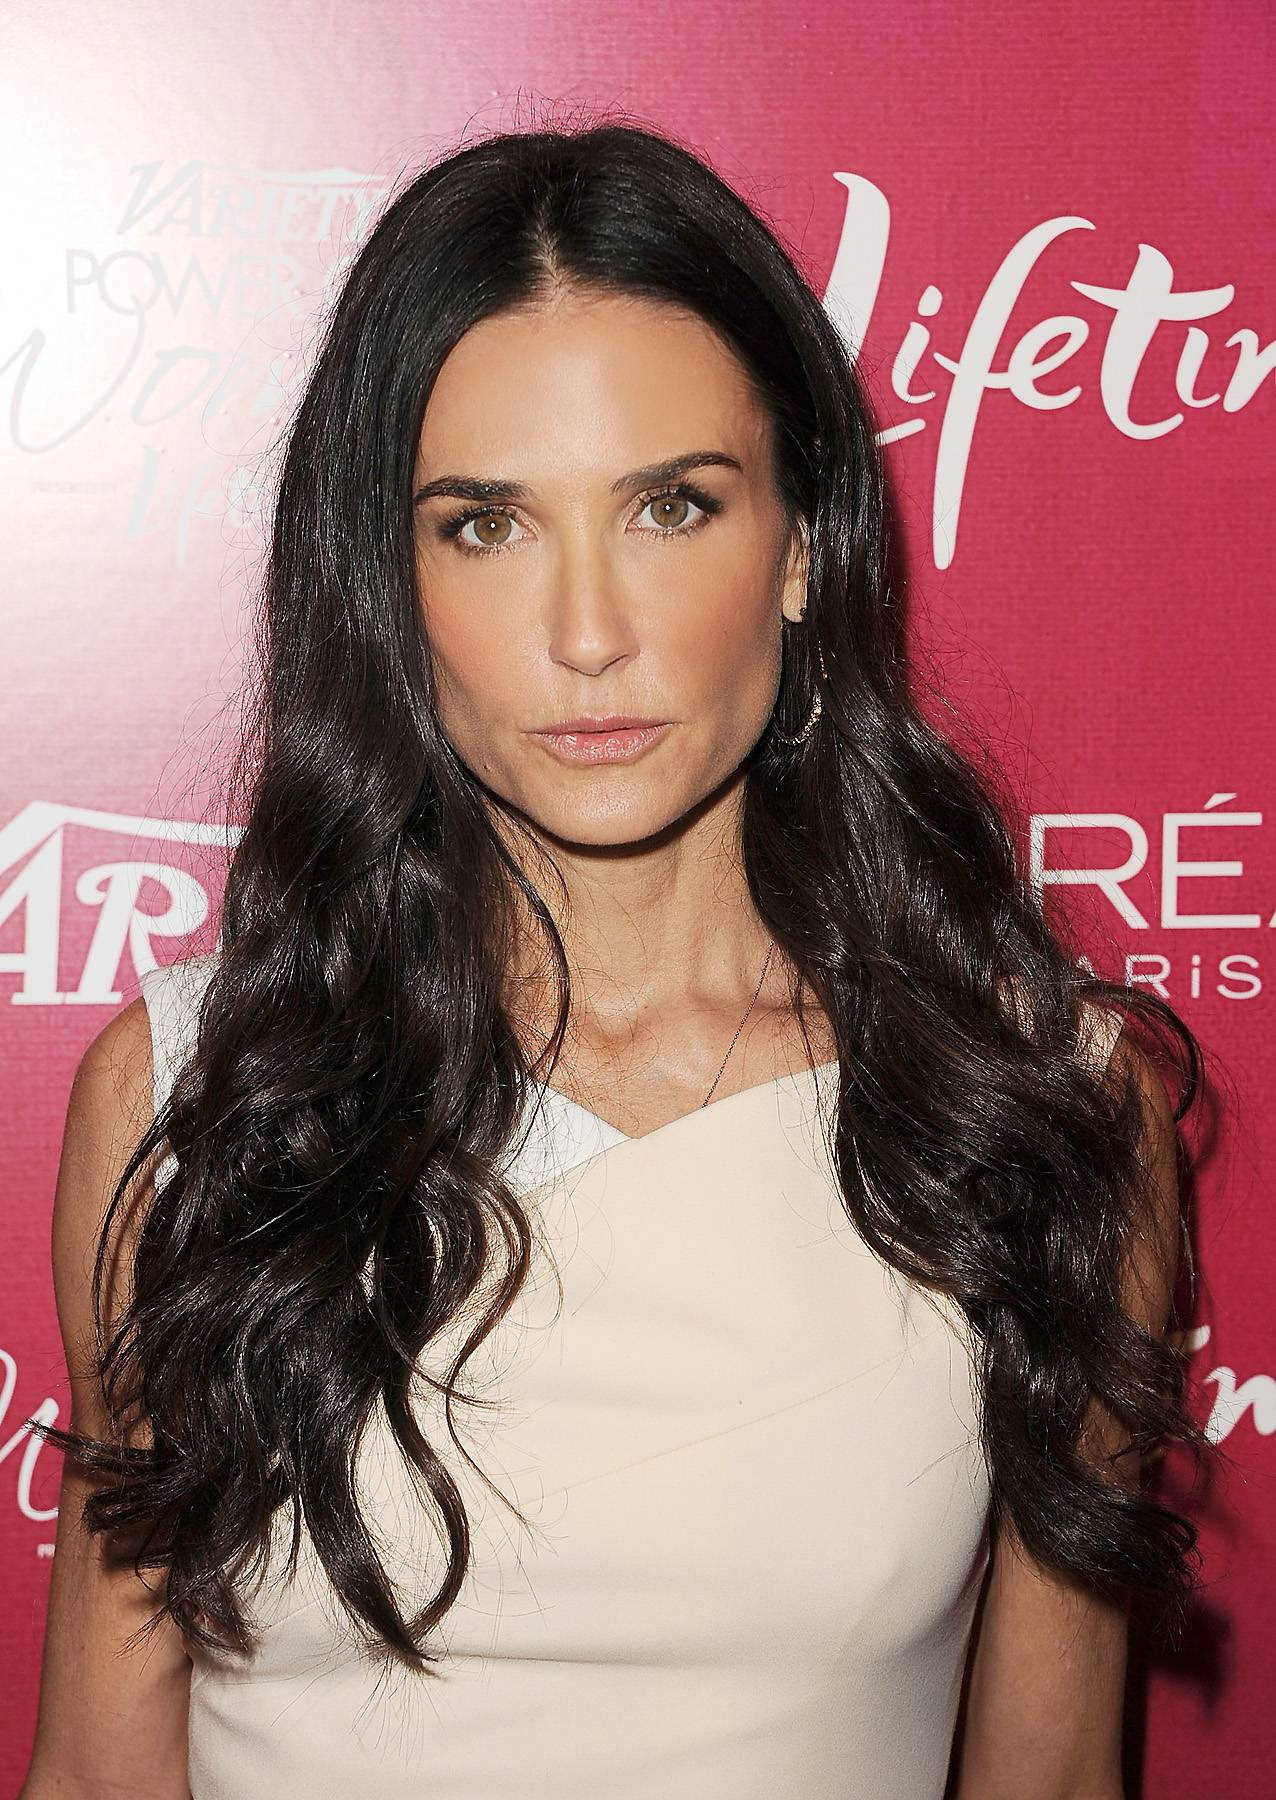 040612-shows-lets-stay-together-cougars-demi-moore.jpg